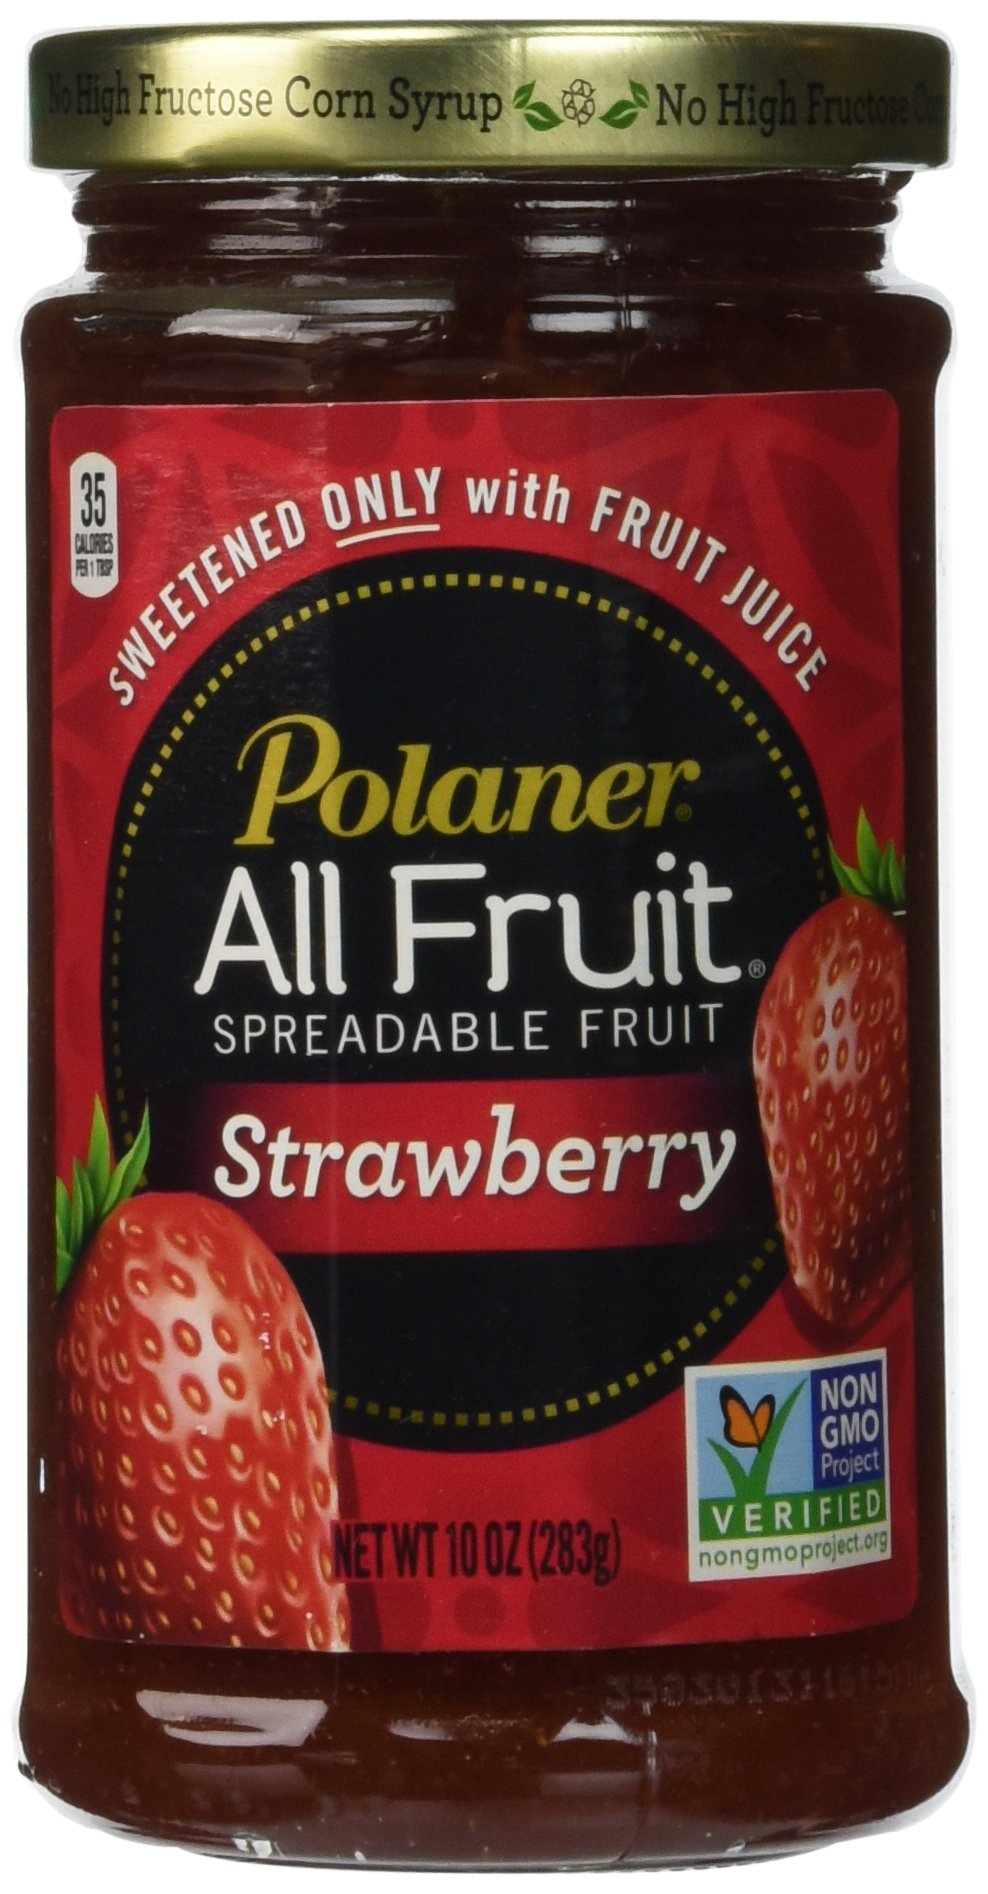 Polaner 100% All Natural Strawberry Fruit Spread 10 oz (Pack of 12) by Polaner All Fruit (Image #1)